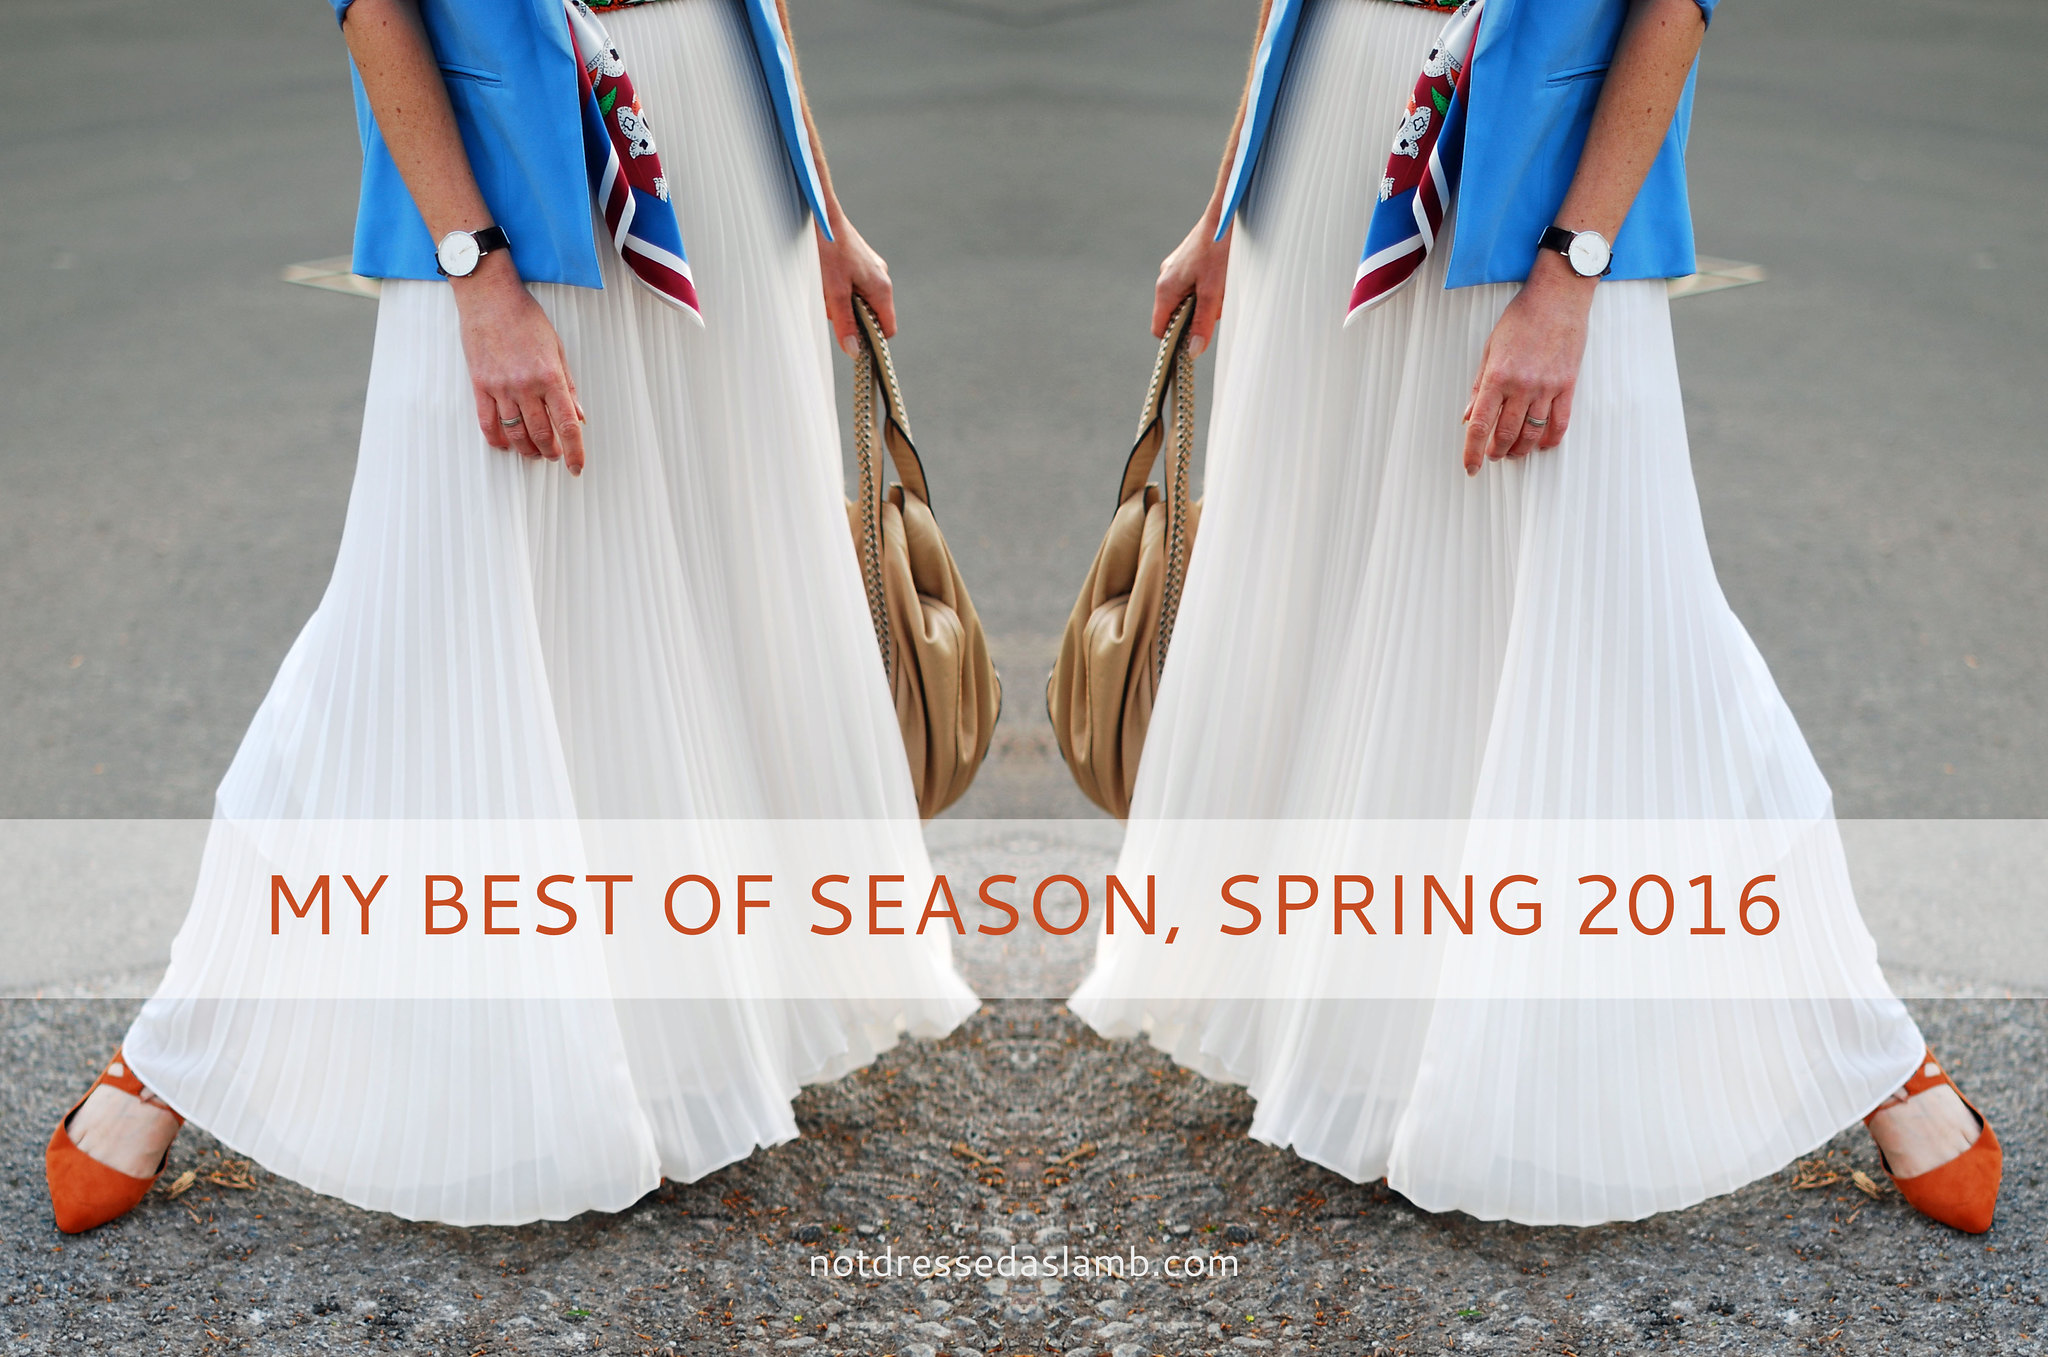 10 Spring Outfit Ideas (My Best of Season, Spring 2016) | Not Dressed As Lamb